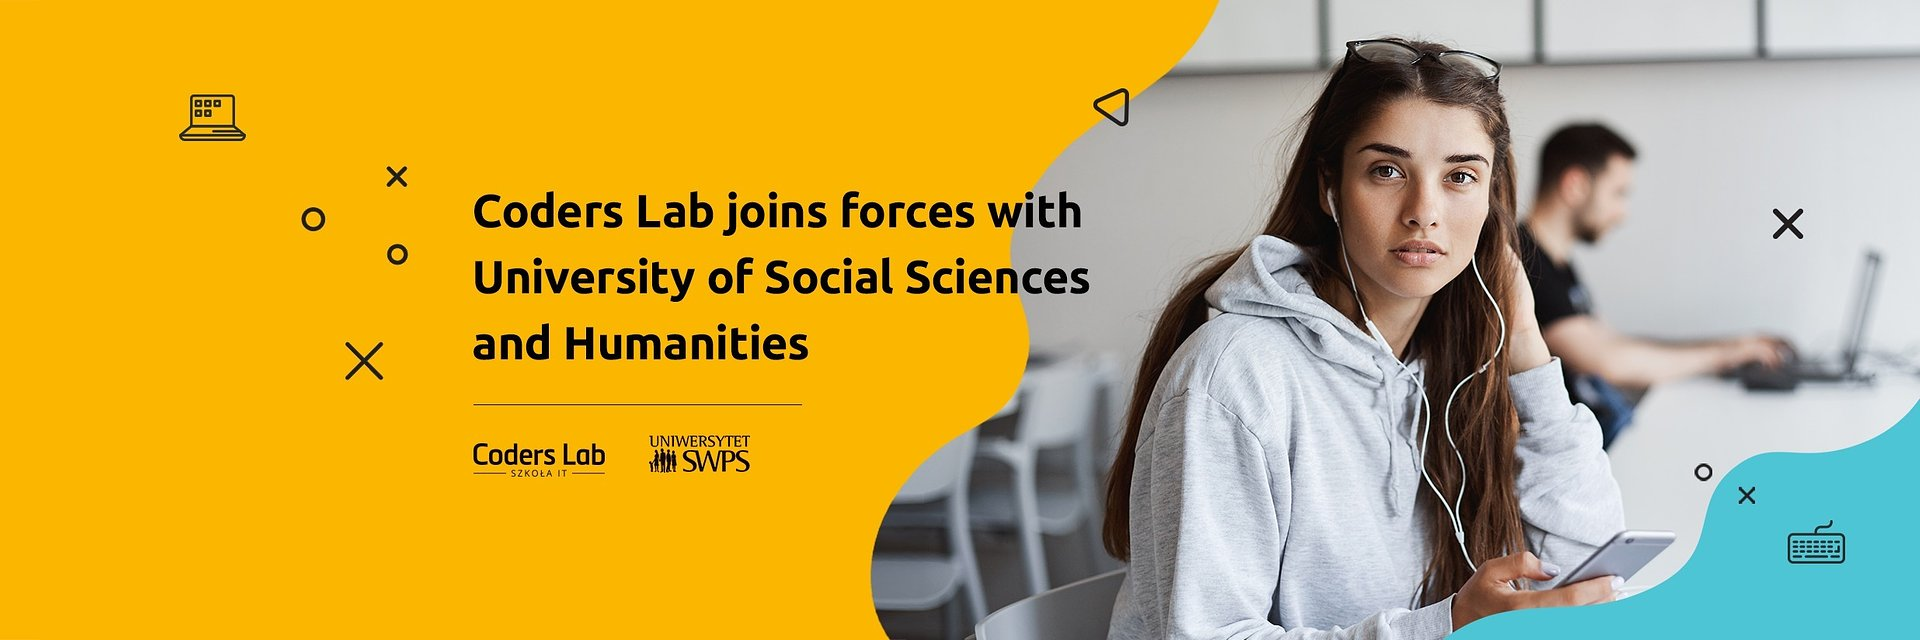 Coders Lab joins forces with SWPS